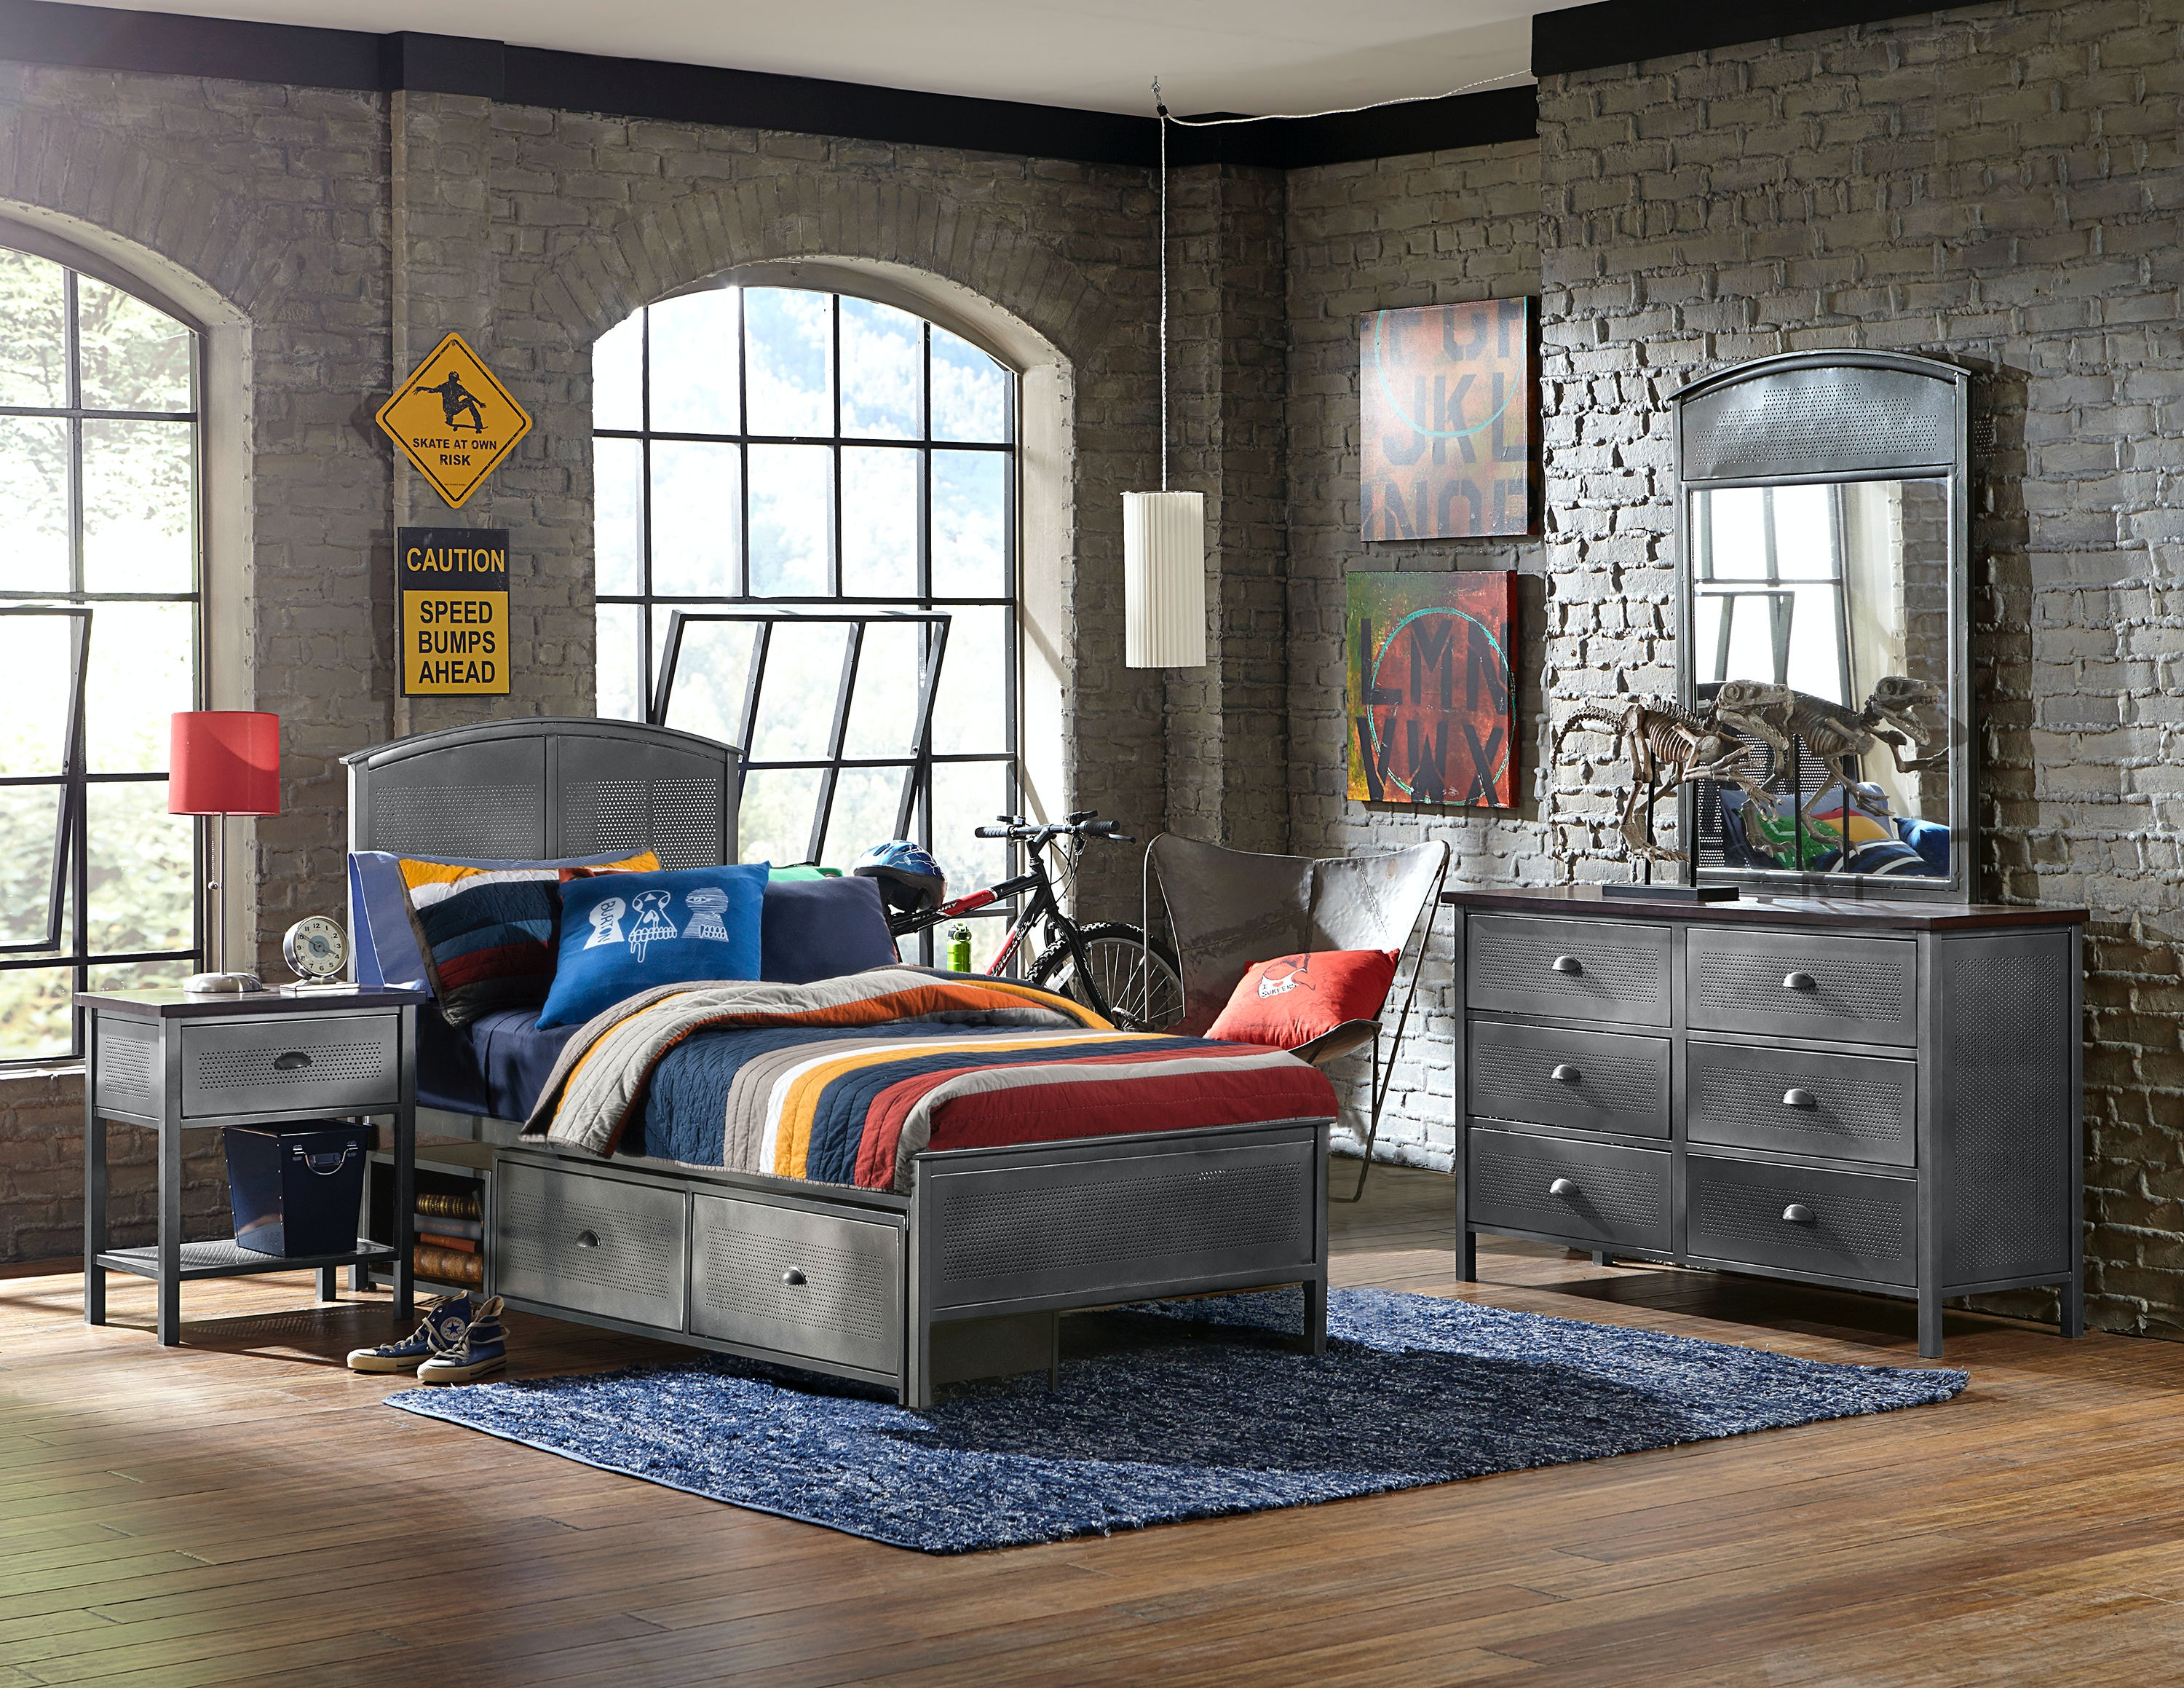 Custom Youth Bedroom Sets Painting